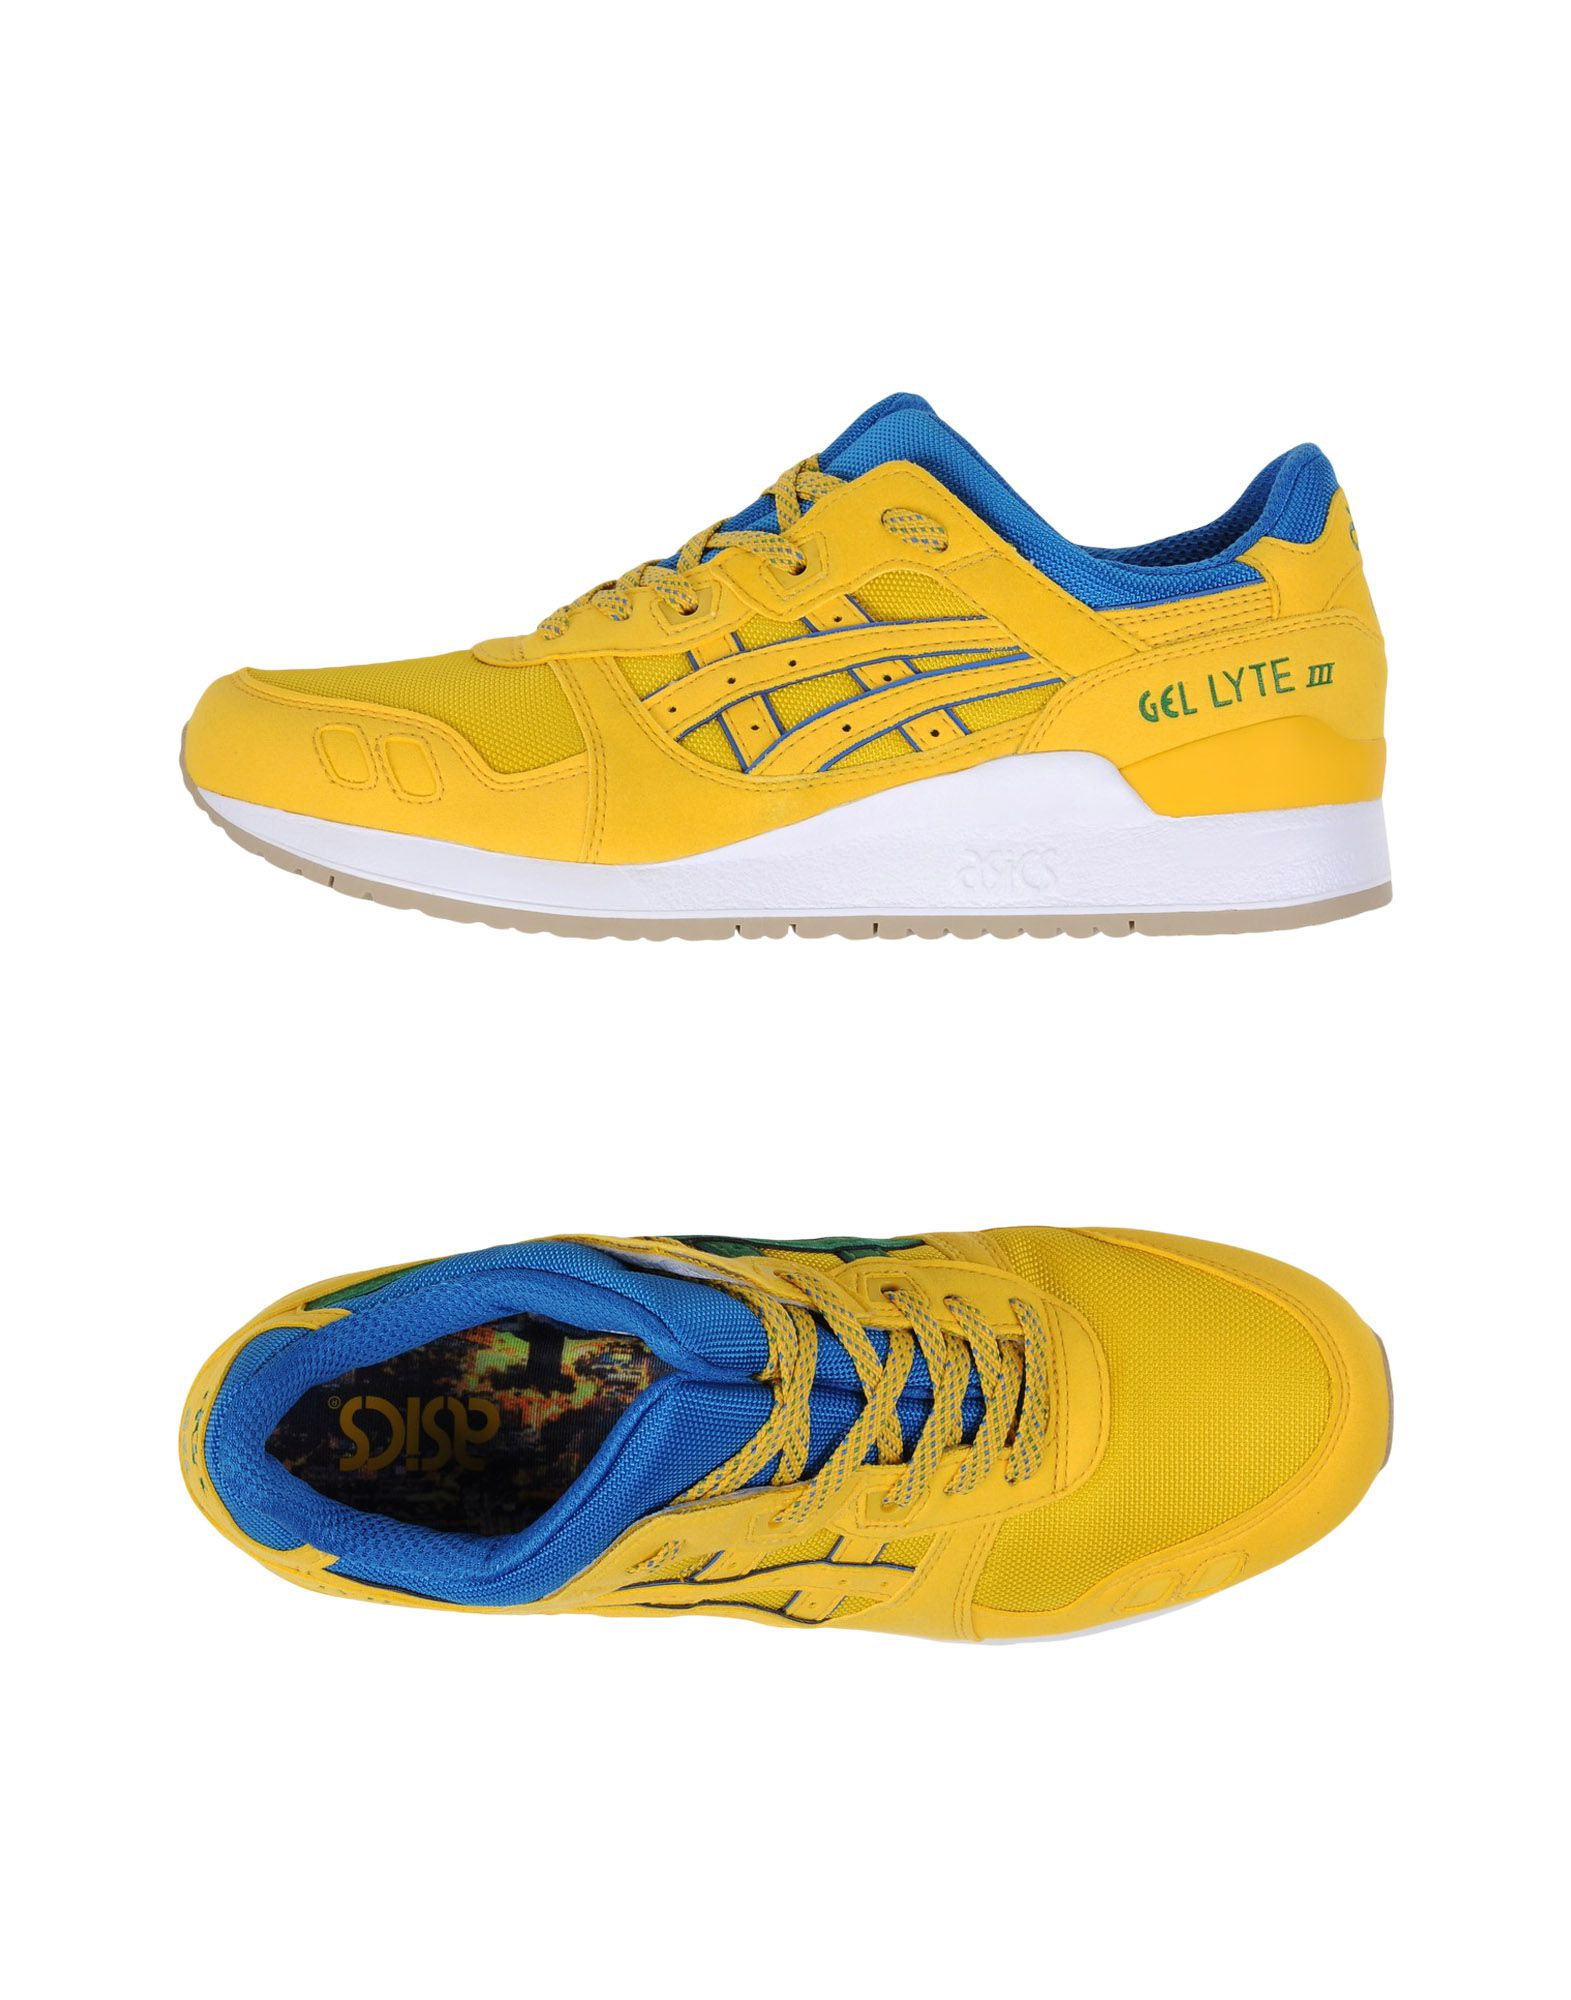 Sneakers Asics Tiger Gel-Lyte Iii - Uomo - Acquista online su